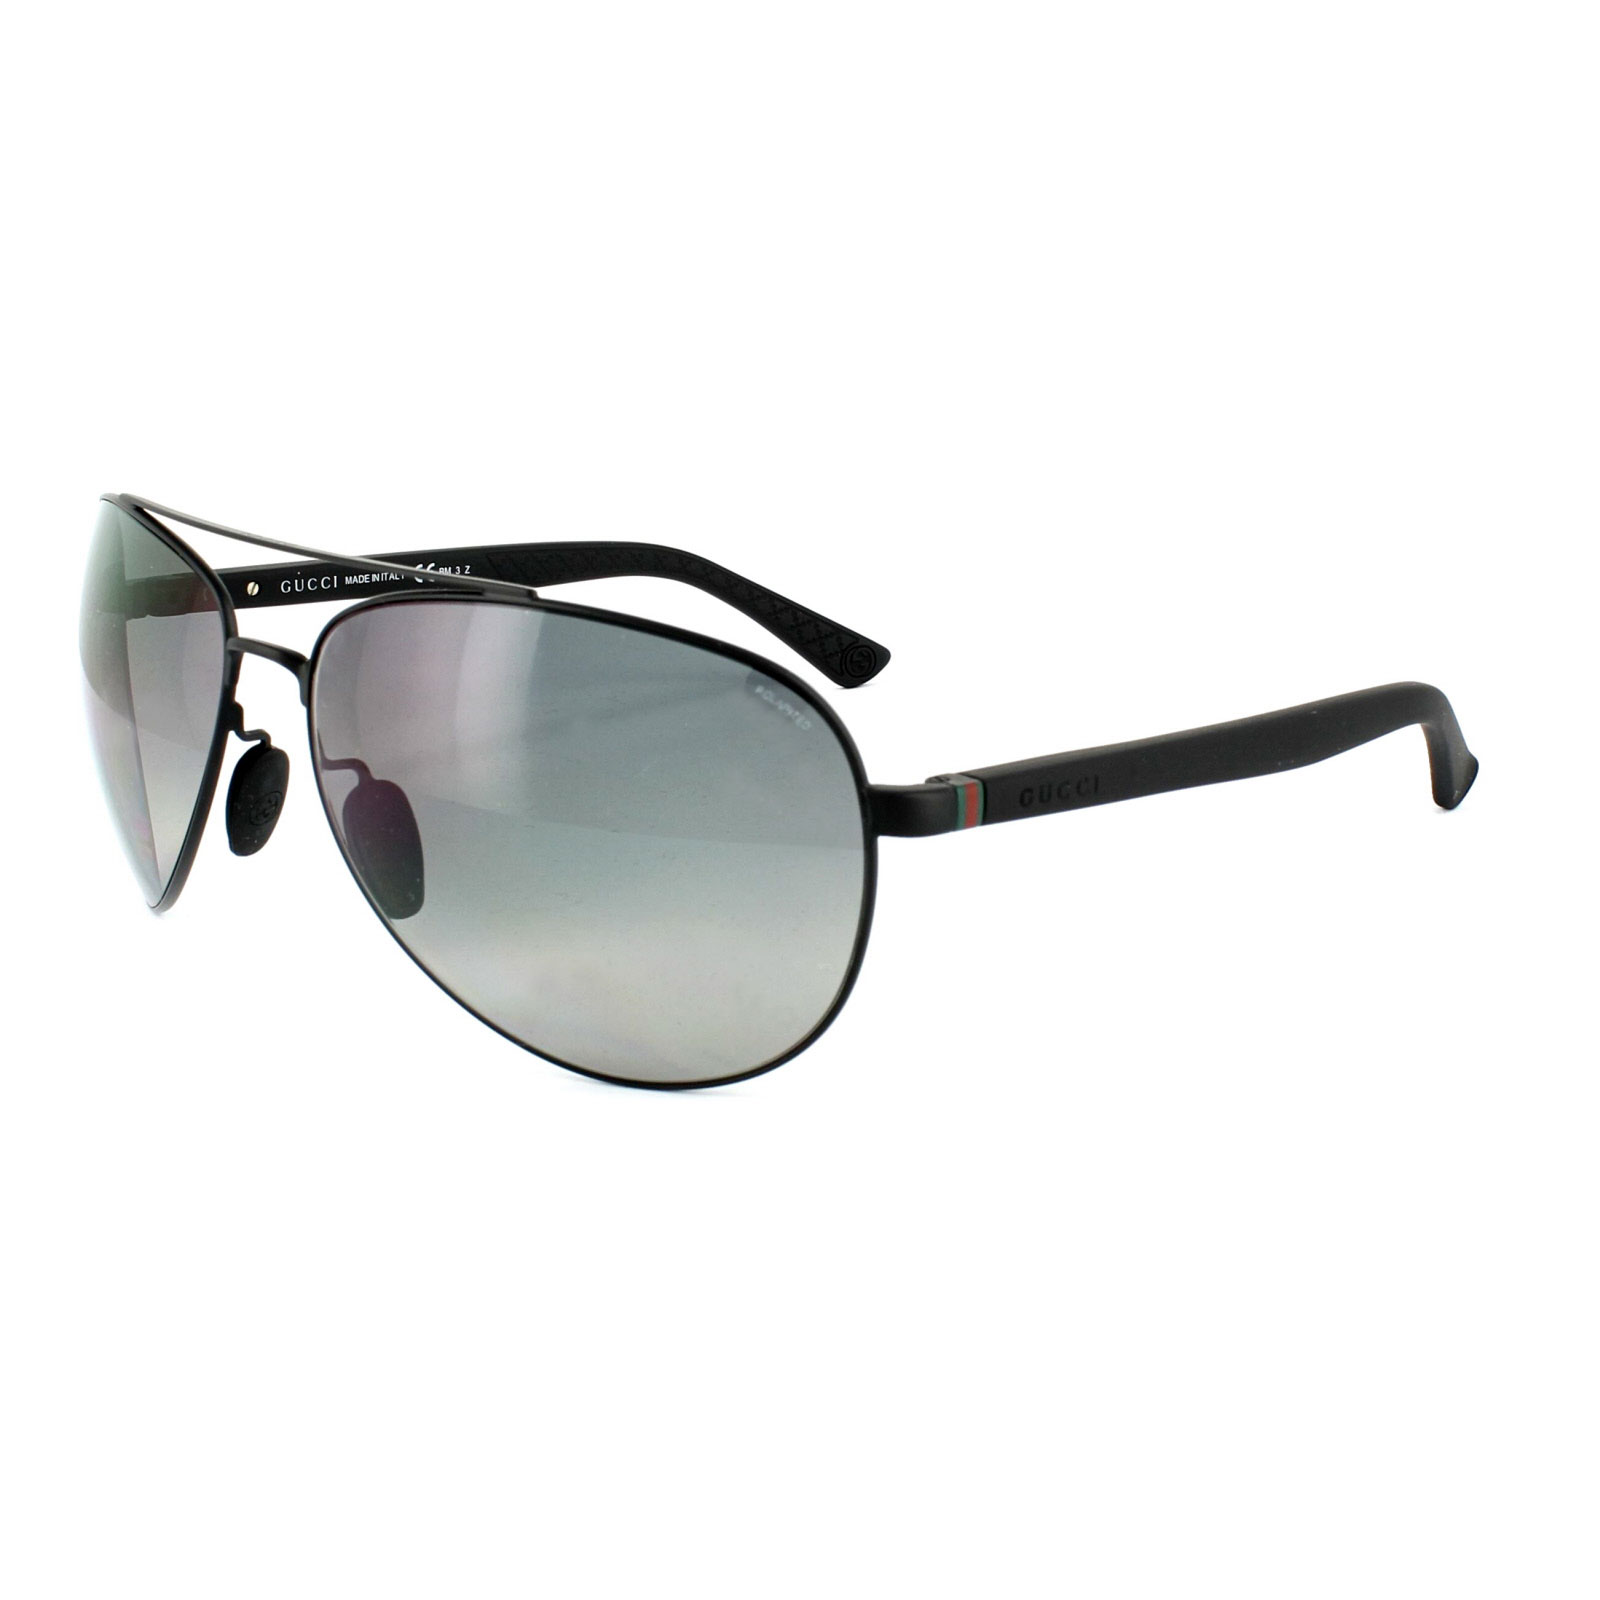 4092440b8b Gucci Sunglasses Price In Kuwait